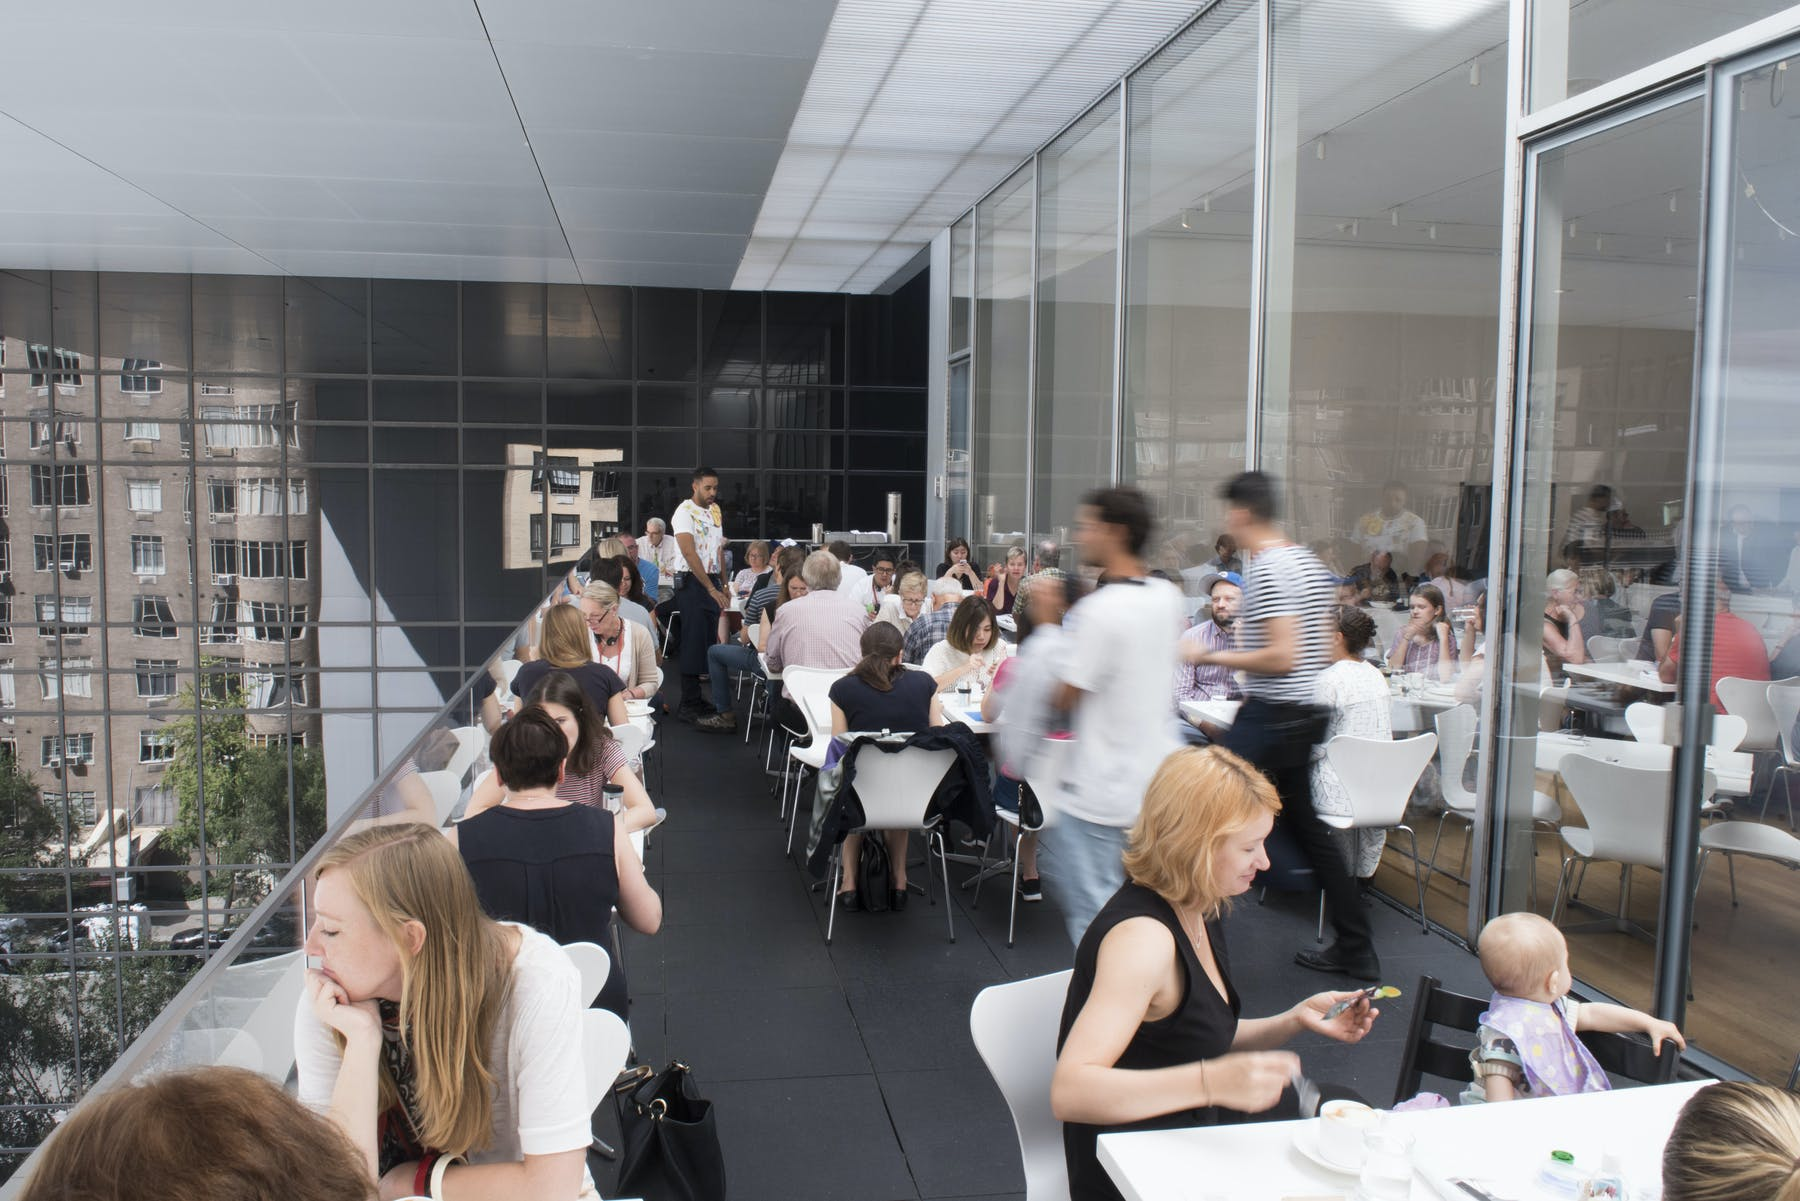 CAFES AT MOMA - Restaurants